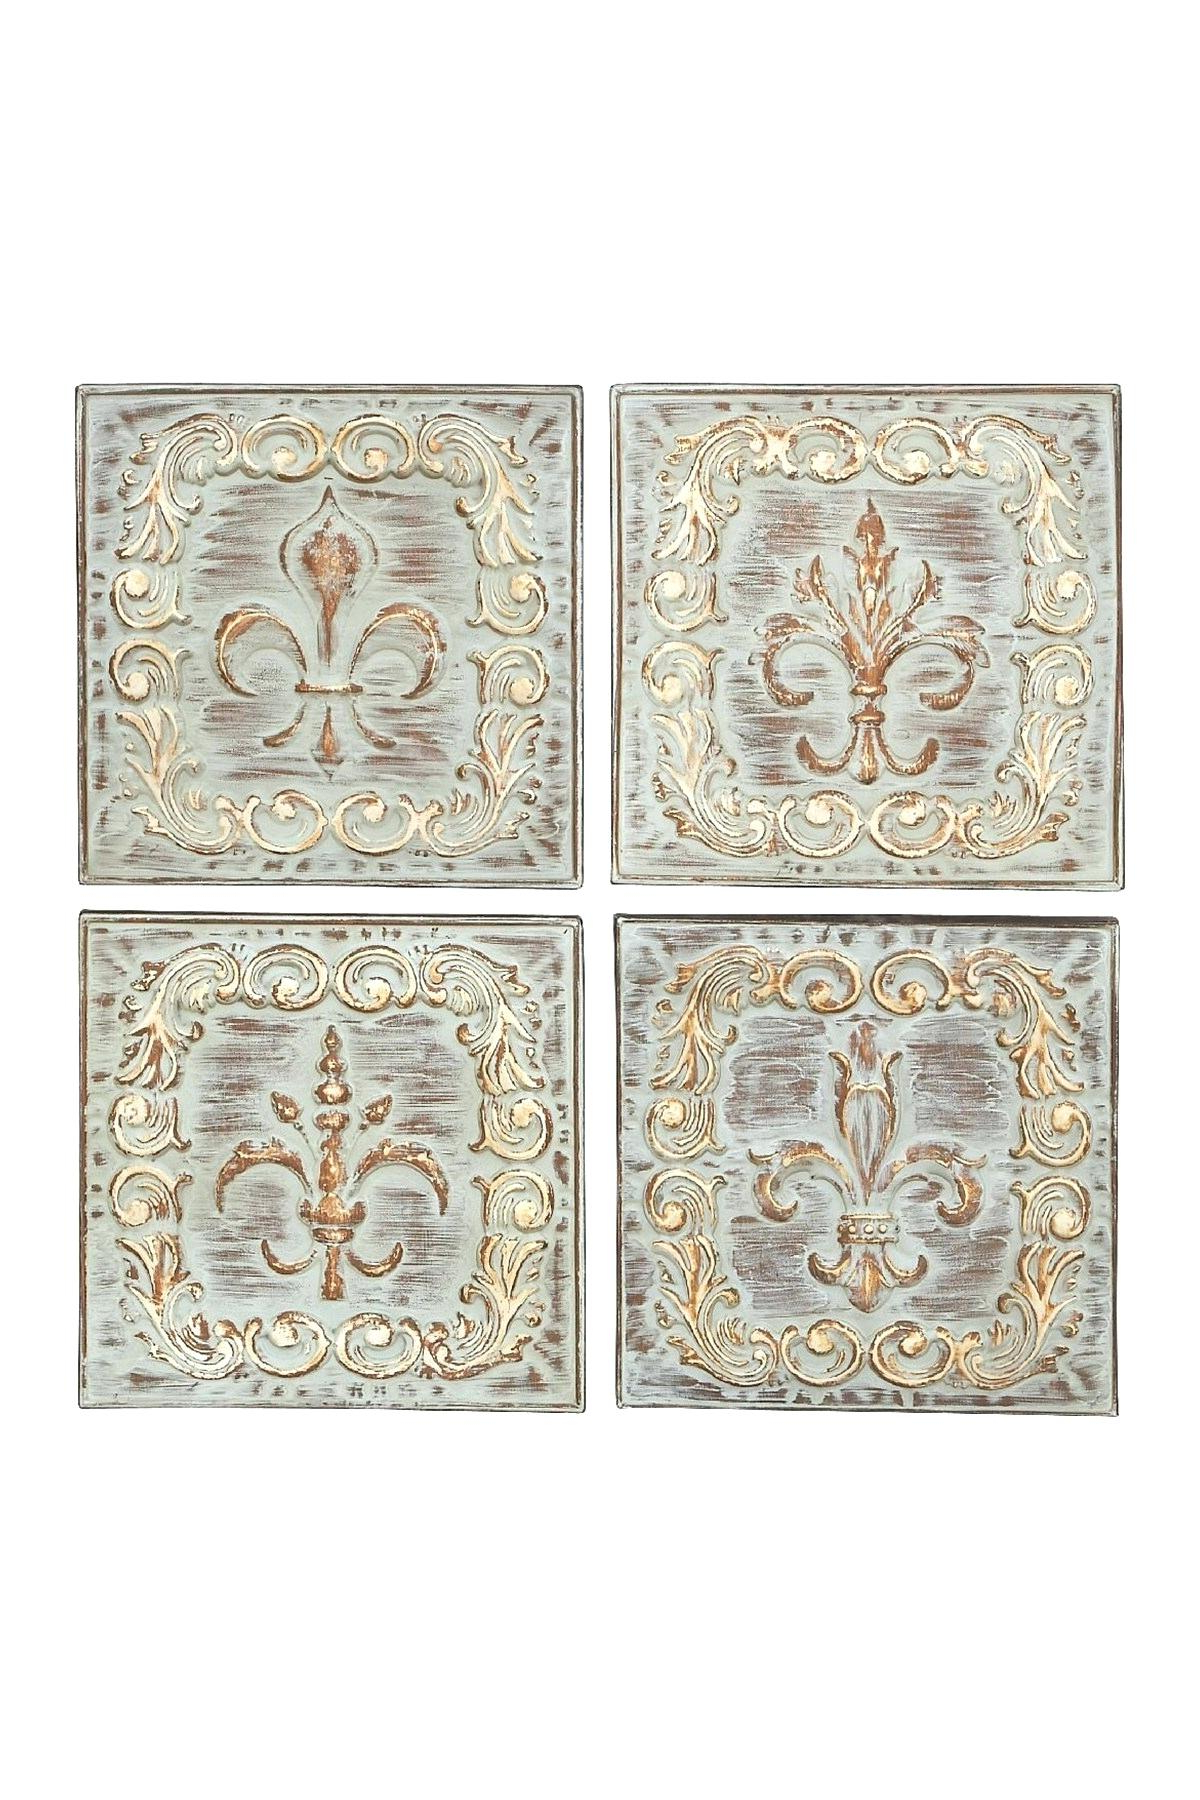 Popular 4 Piece Metal Wall Decor Sets Regarding Metal Wall Decor Set Full Size Of Modern Patio Wall Decor Sets Smart (View 3 of 20)